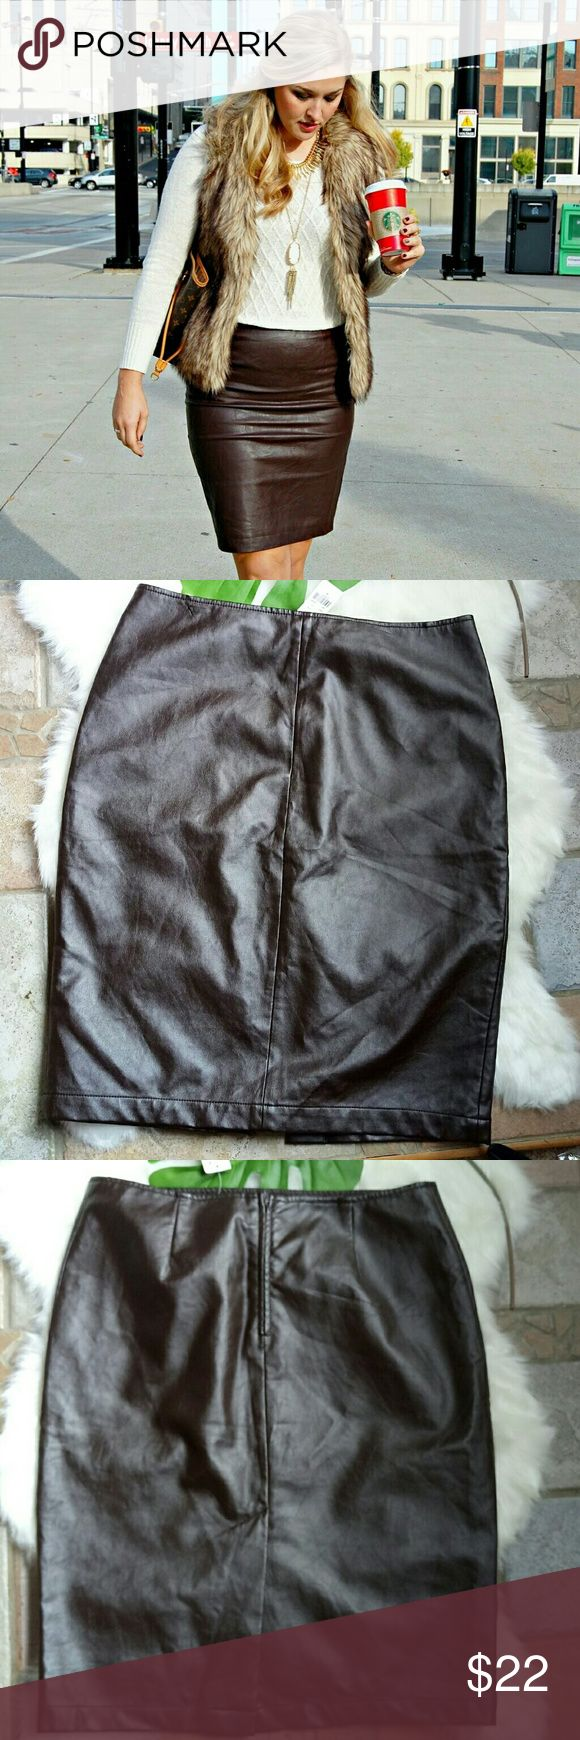 """NWT Brown Faux Leather Pencil skirt Perfect Fall skirt. New brown leather skirt size 6. Waist 31"""". Length 23"""". New York & Company Skirts Midi"""